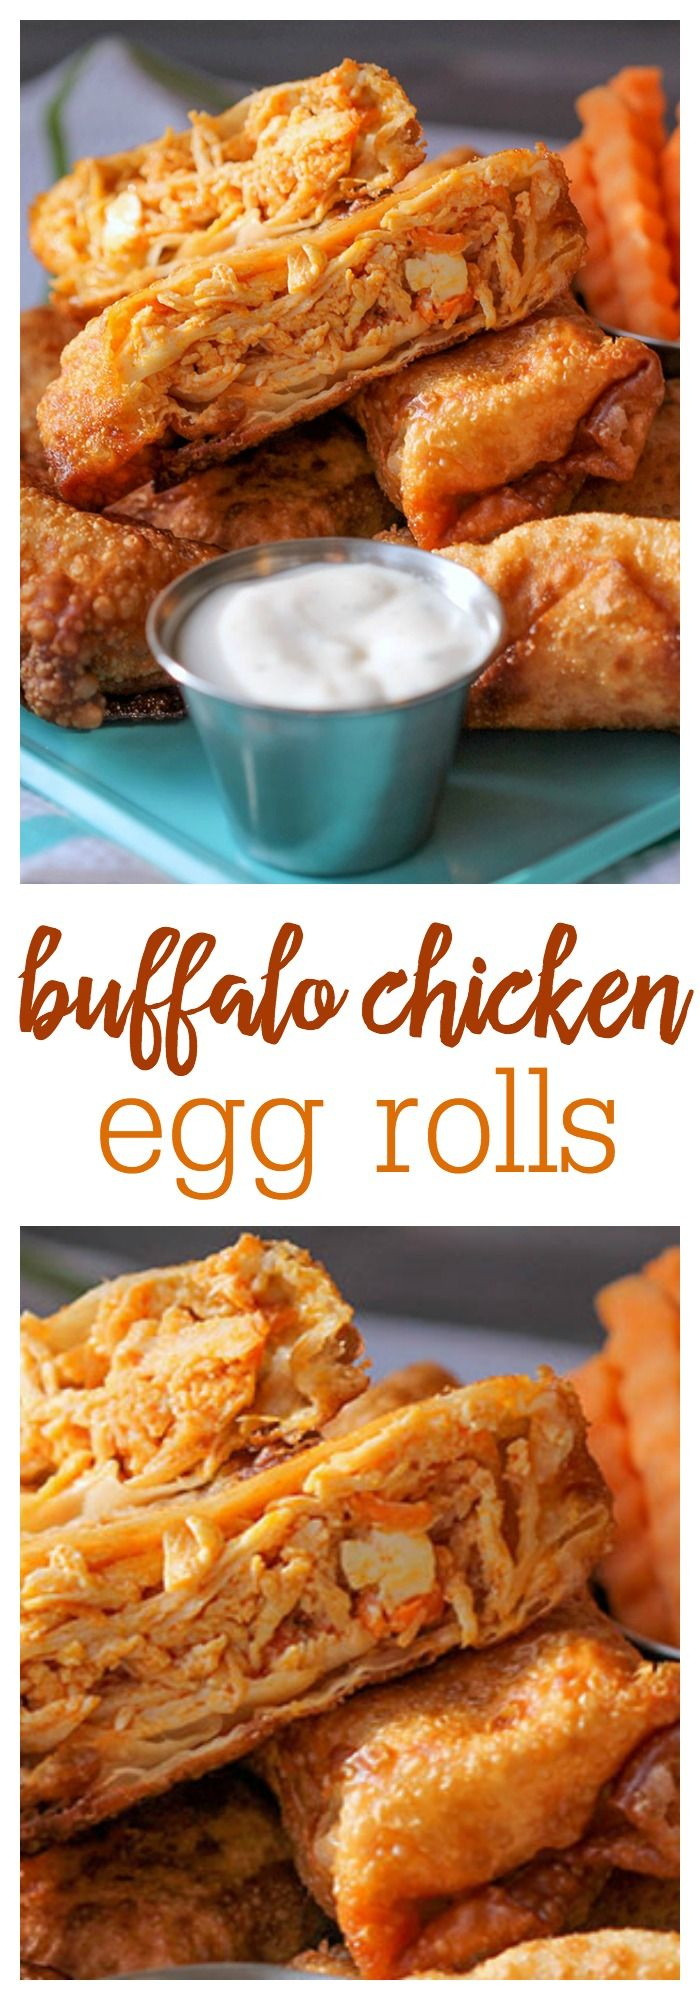 Buffalo Chicken Egg Rolls - two of our favorite appetizer recipes in one. They were a hit with the whole crew! Spicy chicken in a crispy wonton wrapper - the combination is so good!